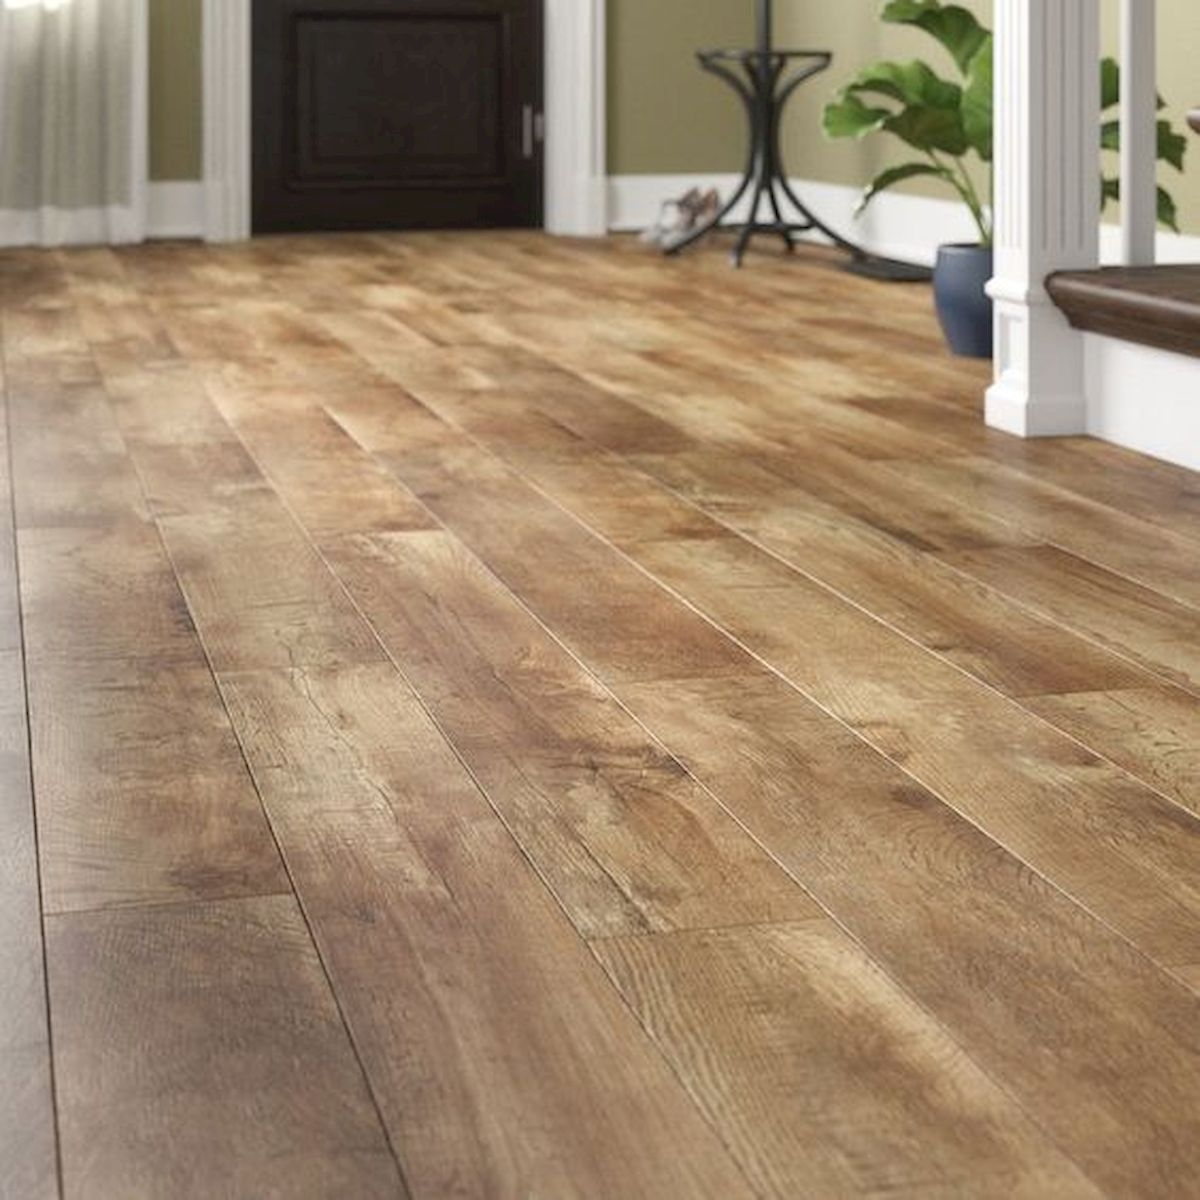 80 Gorgeous Hardwood Floor Ideas For Interior Home (59)